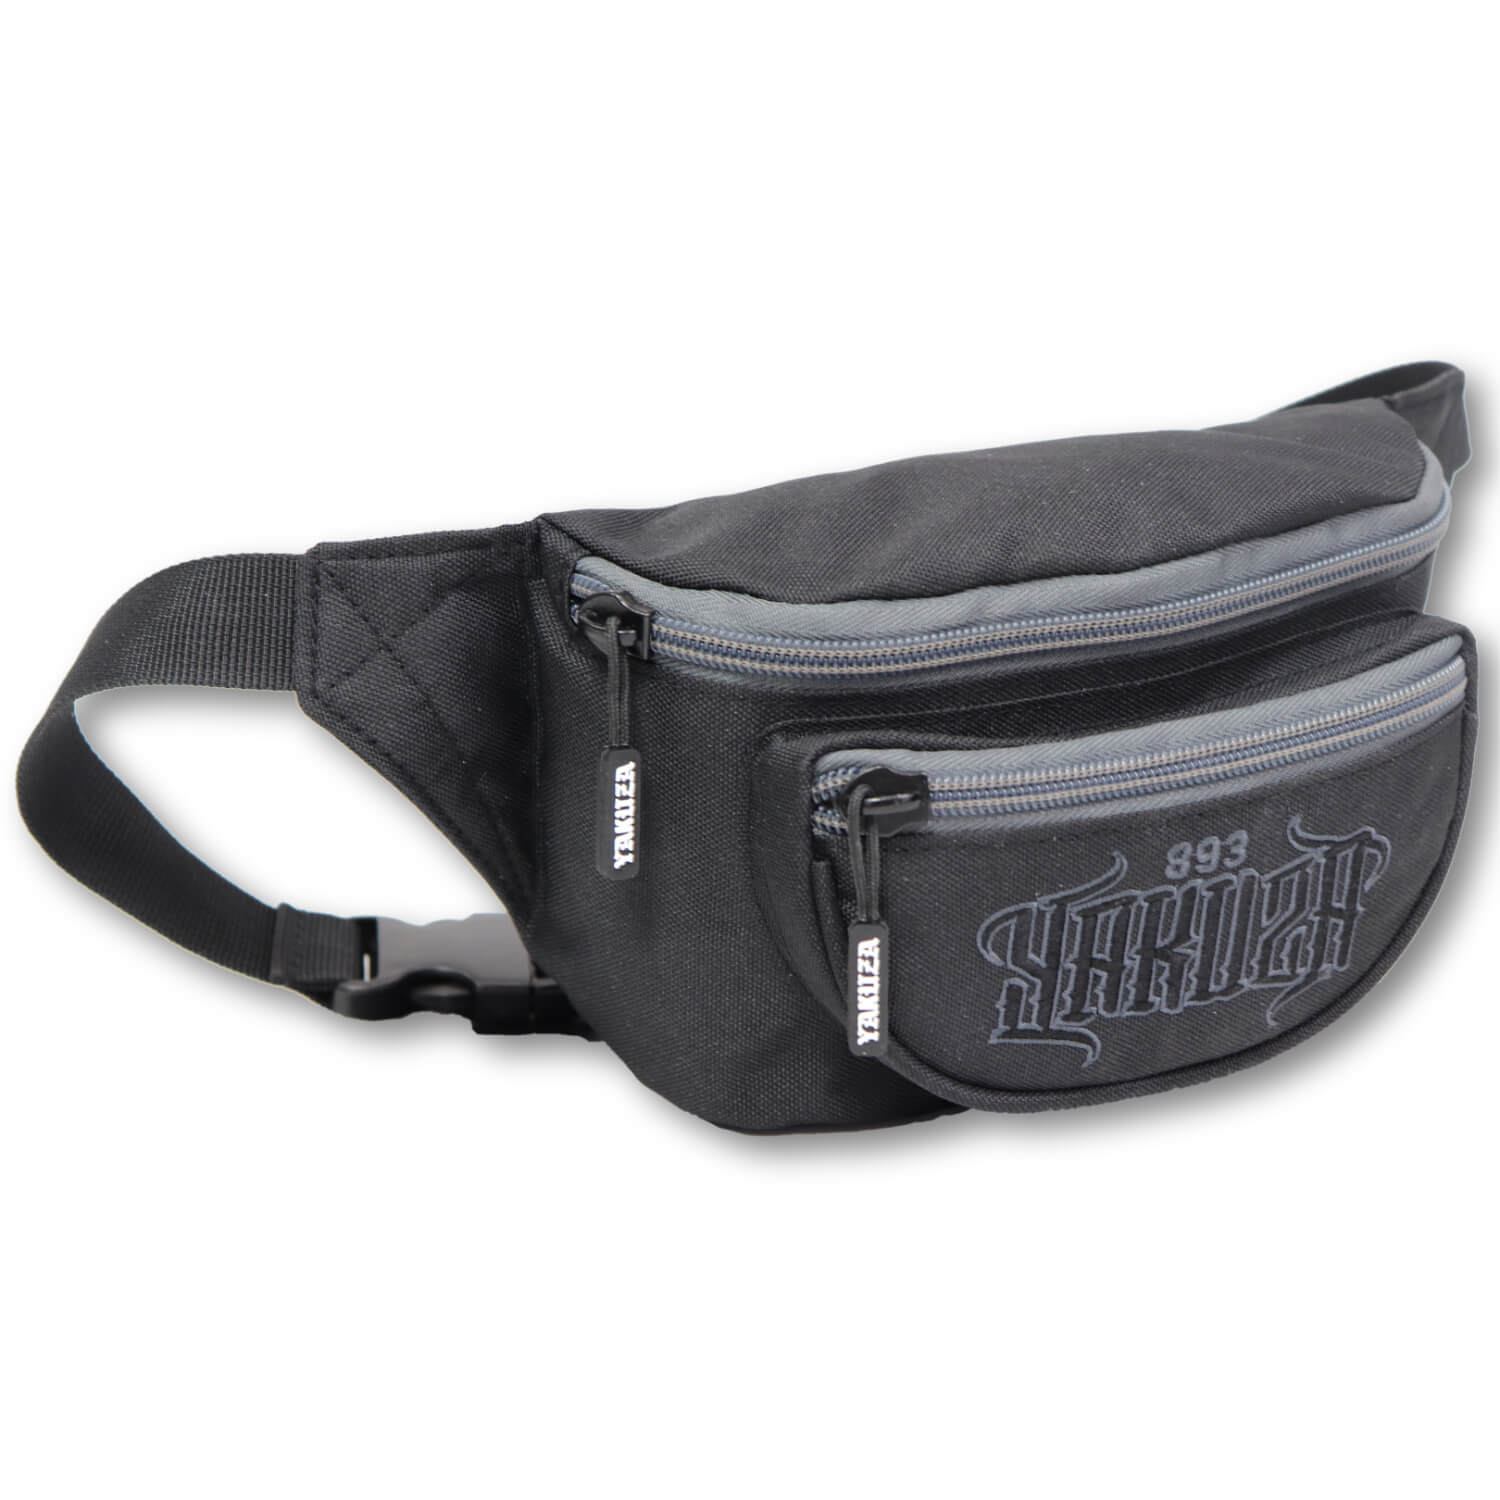 Verve Belt Bag